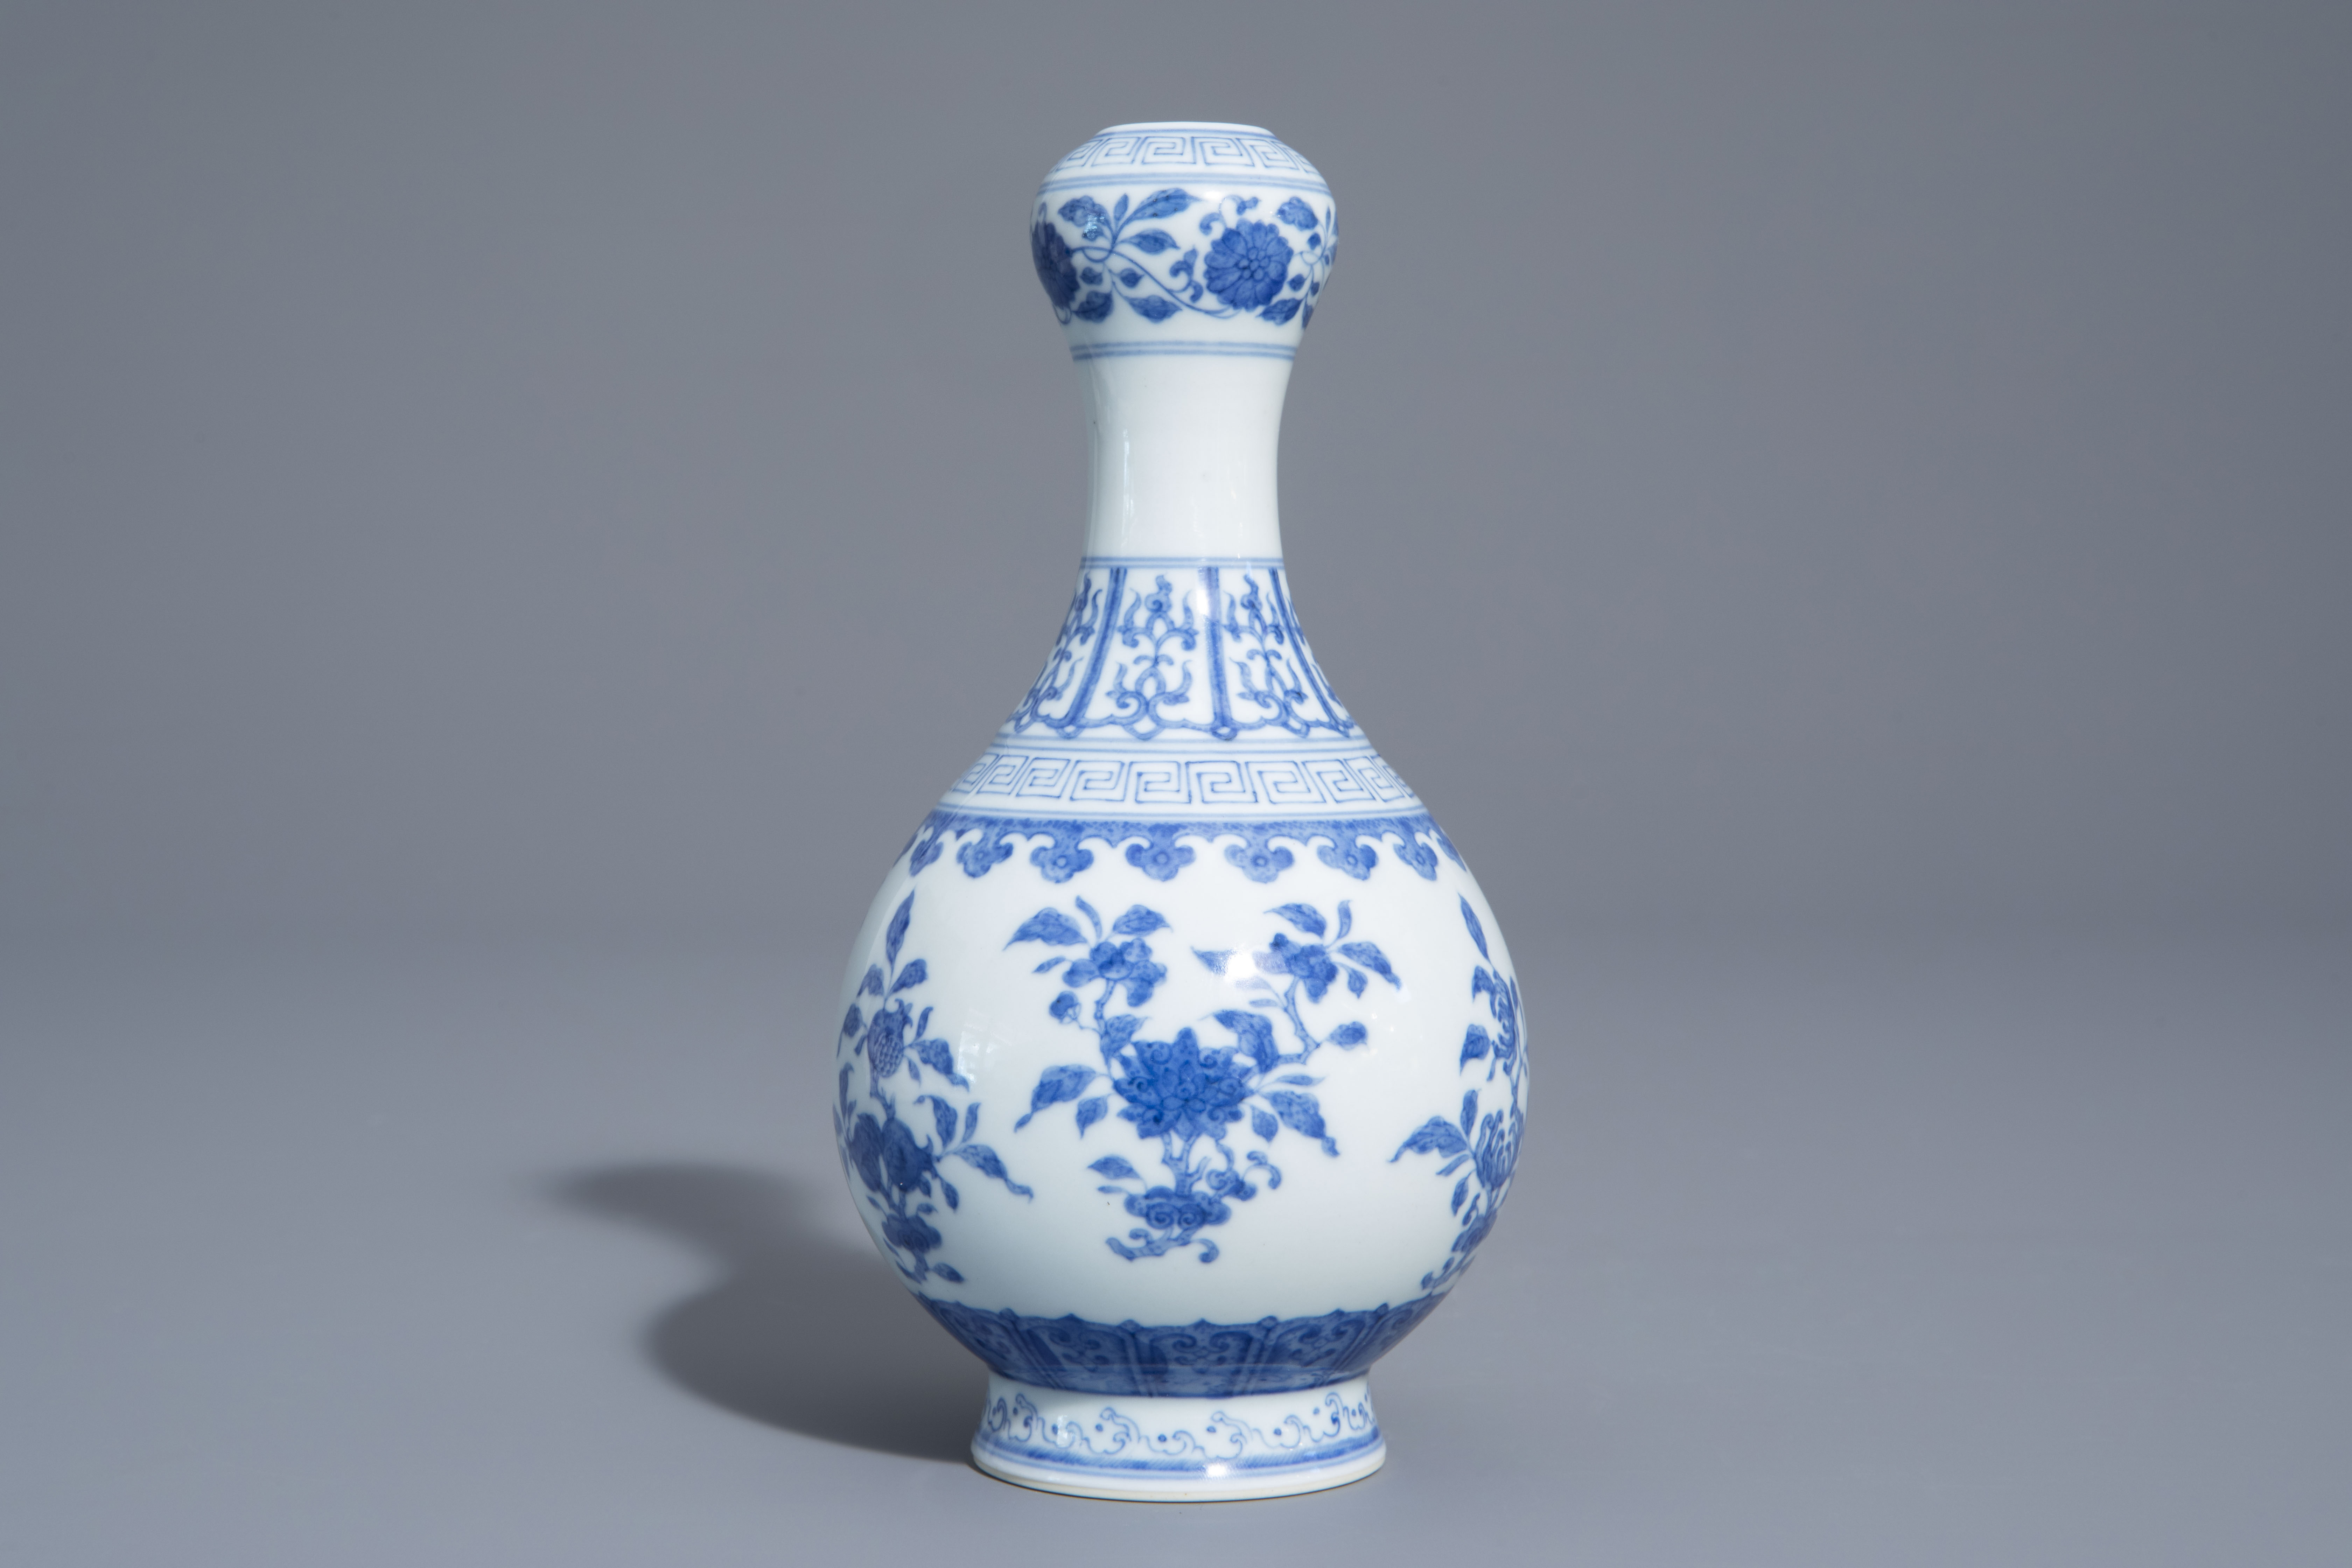 A Chinese blue and white garlic-head mouth vase with floral design, Qianlong mark, 20th C. - Image 2 of 7